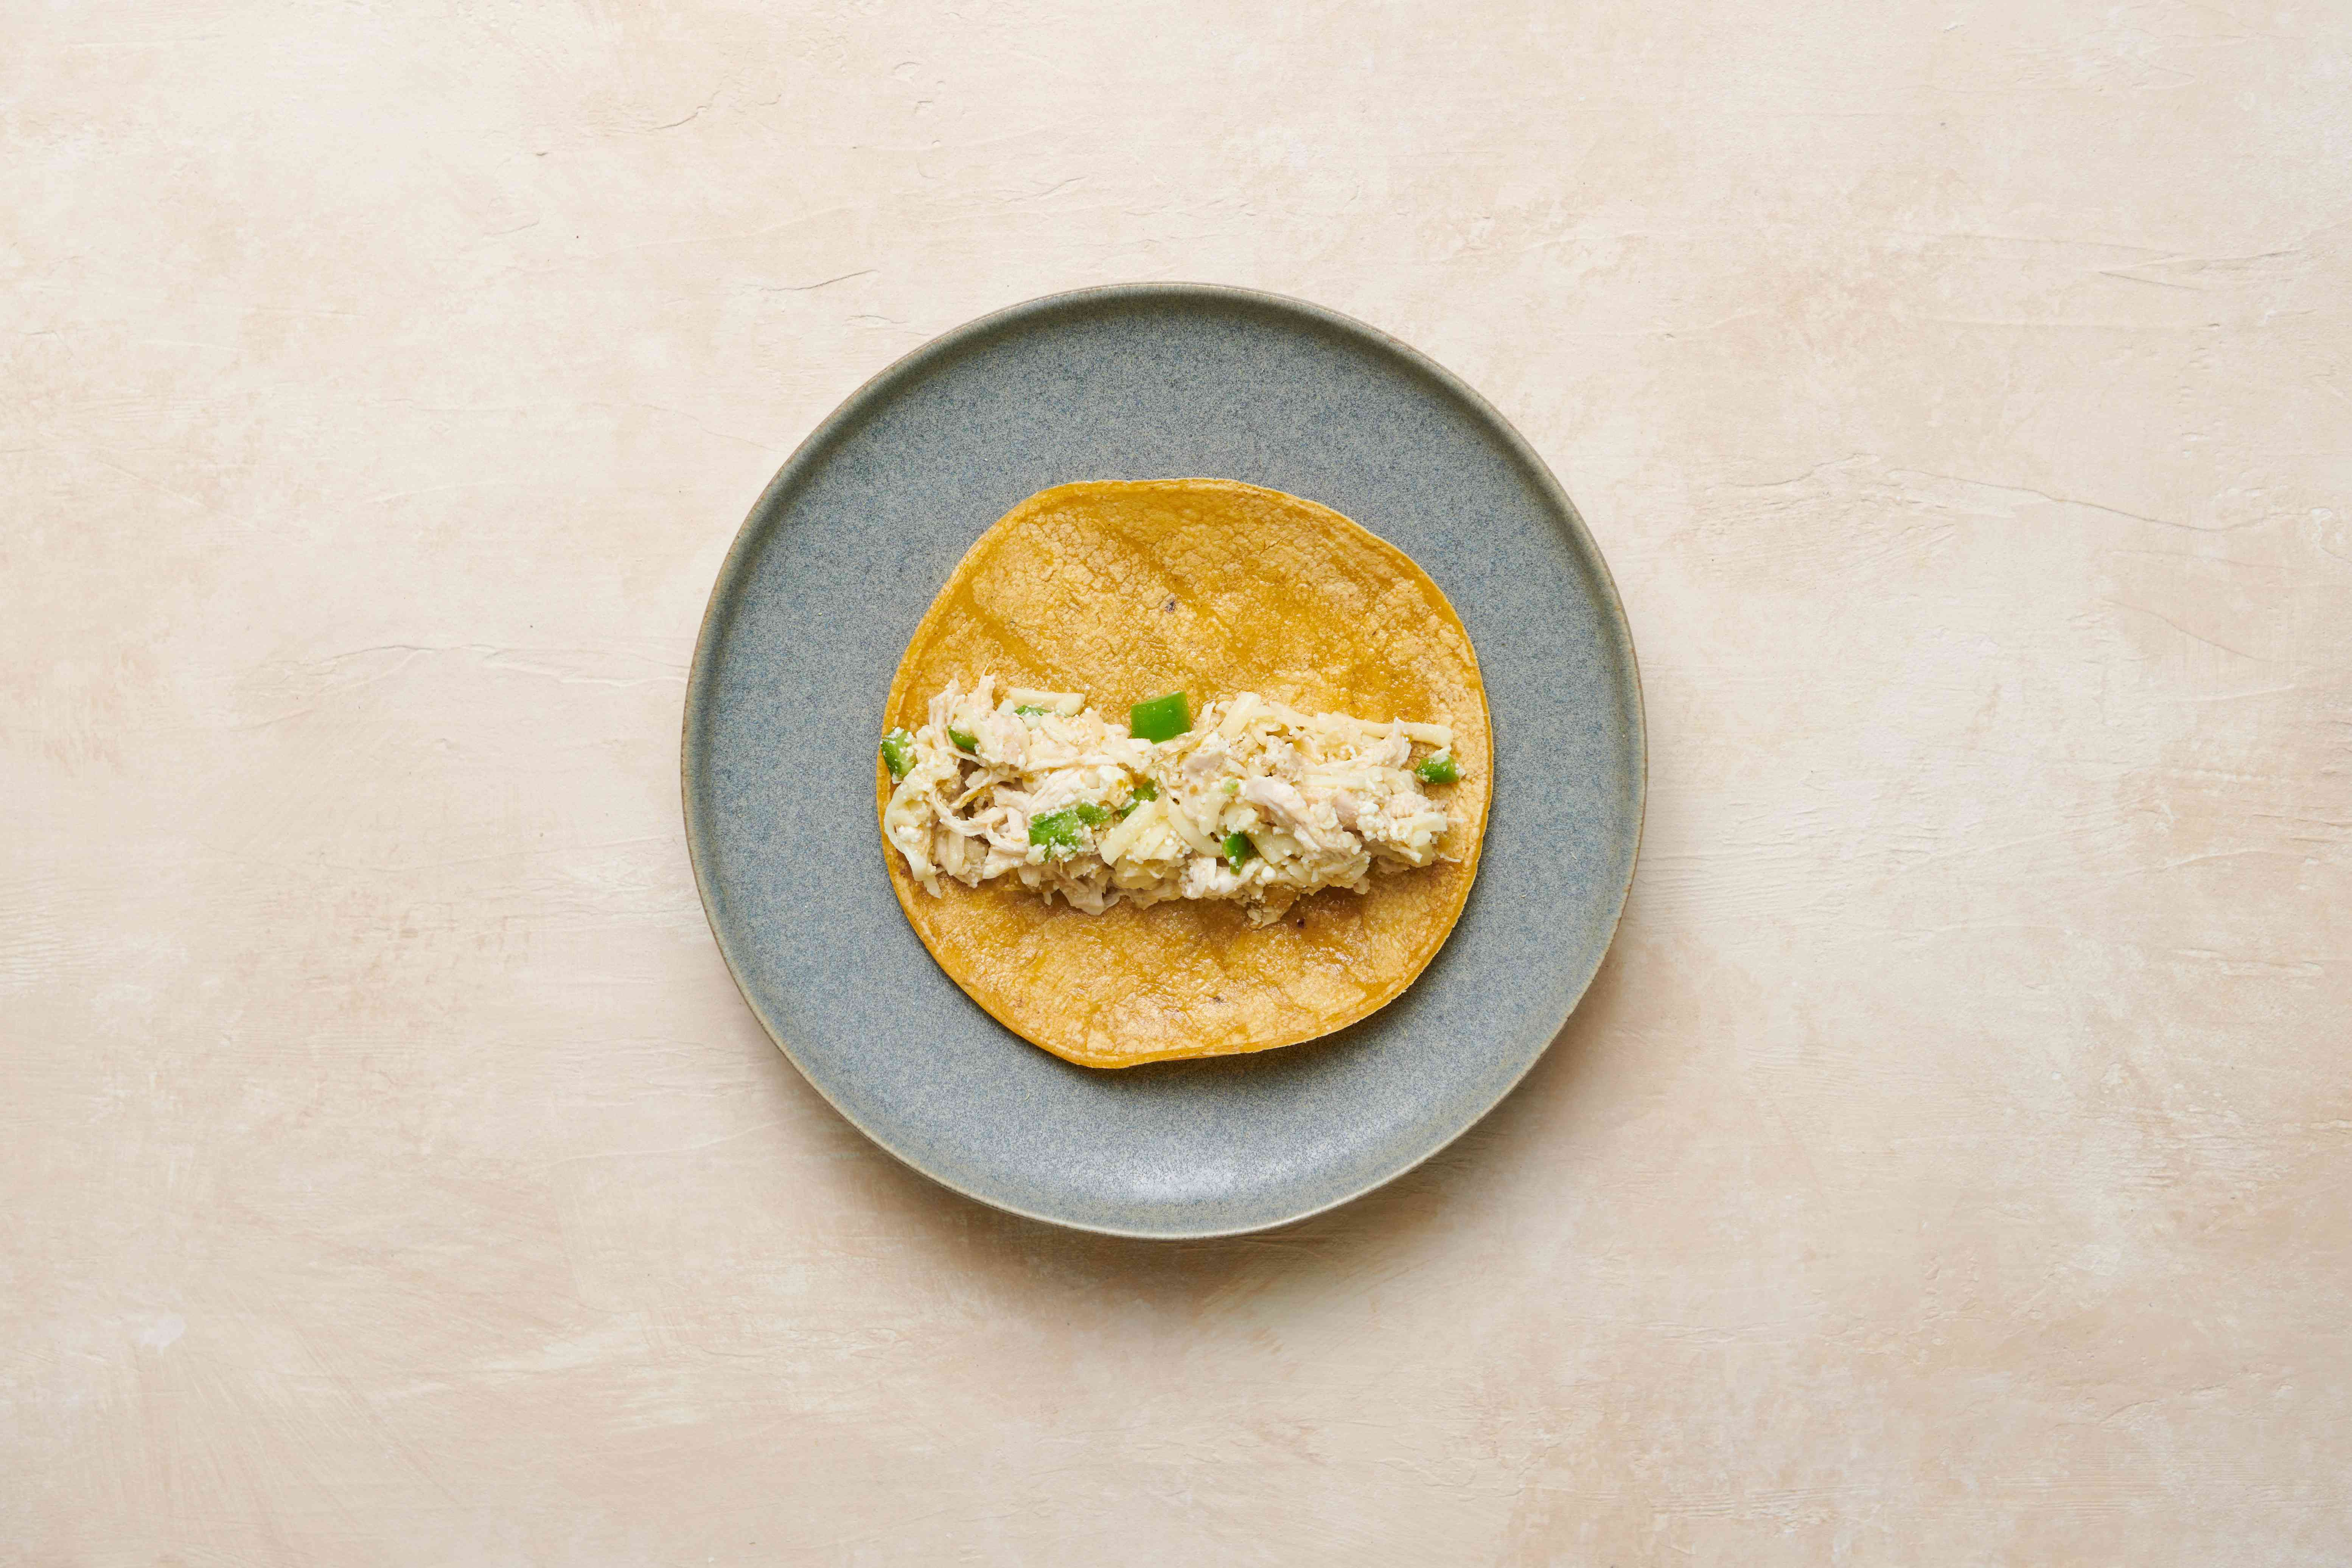 Tortilla with chicken chile filling on top, on a plate